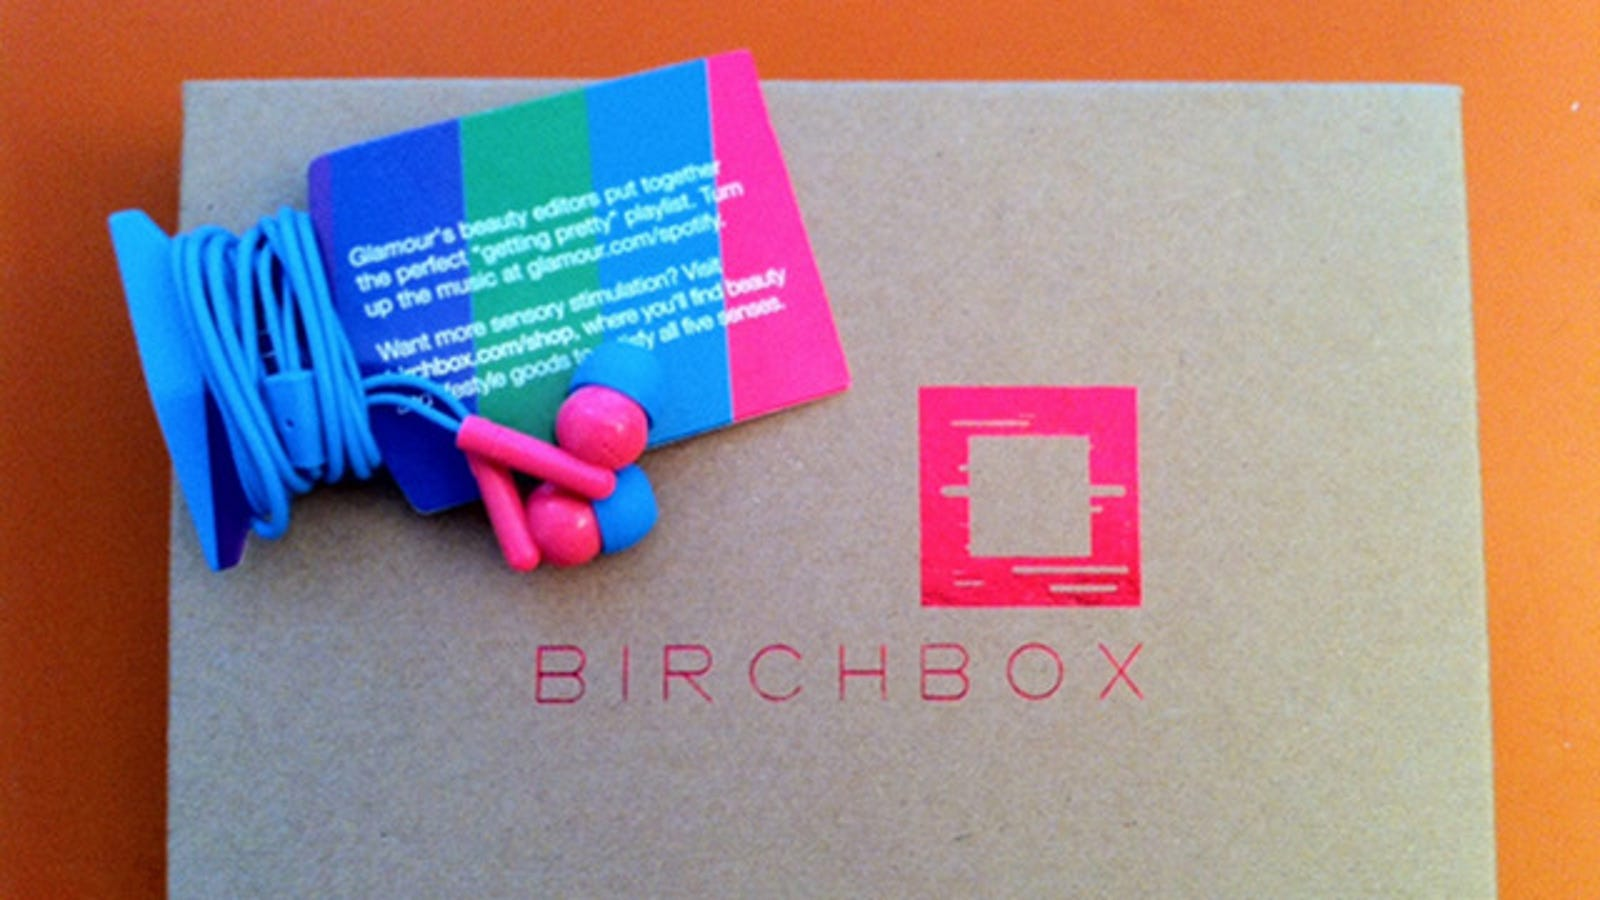 ear buds vogelarder - Birchbox: At Least Those Crappy Earbuds Are Cute!